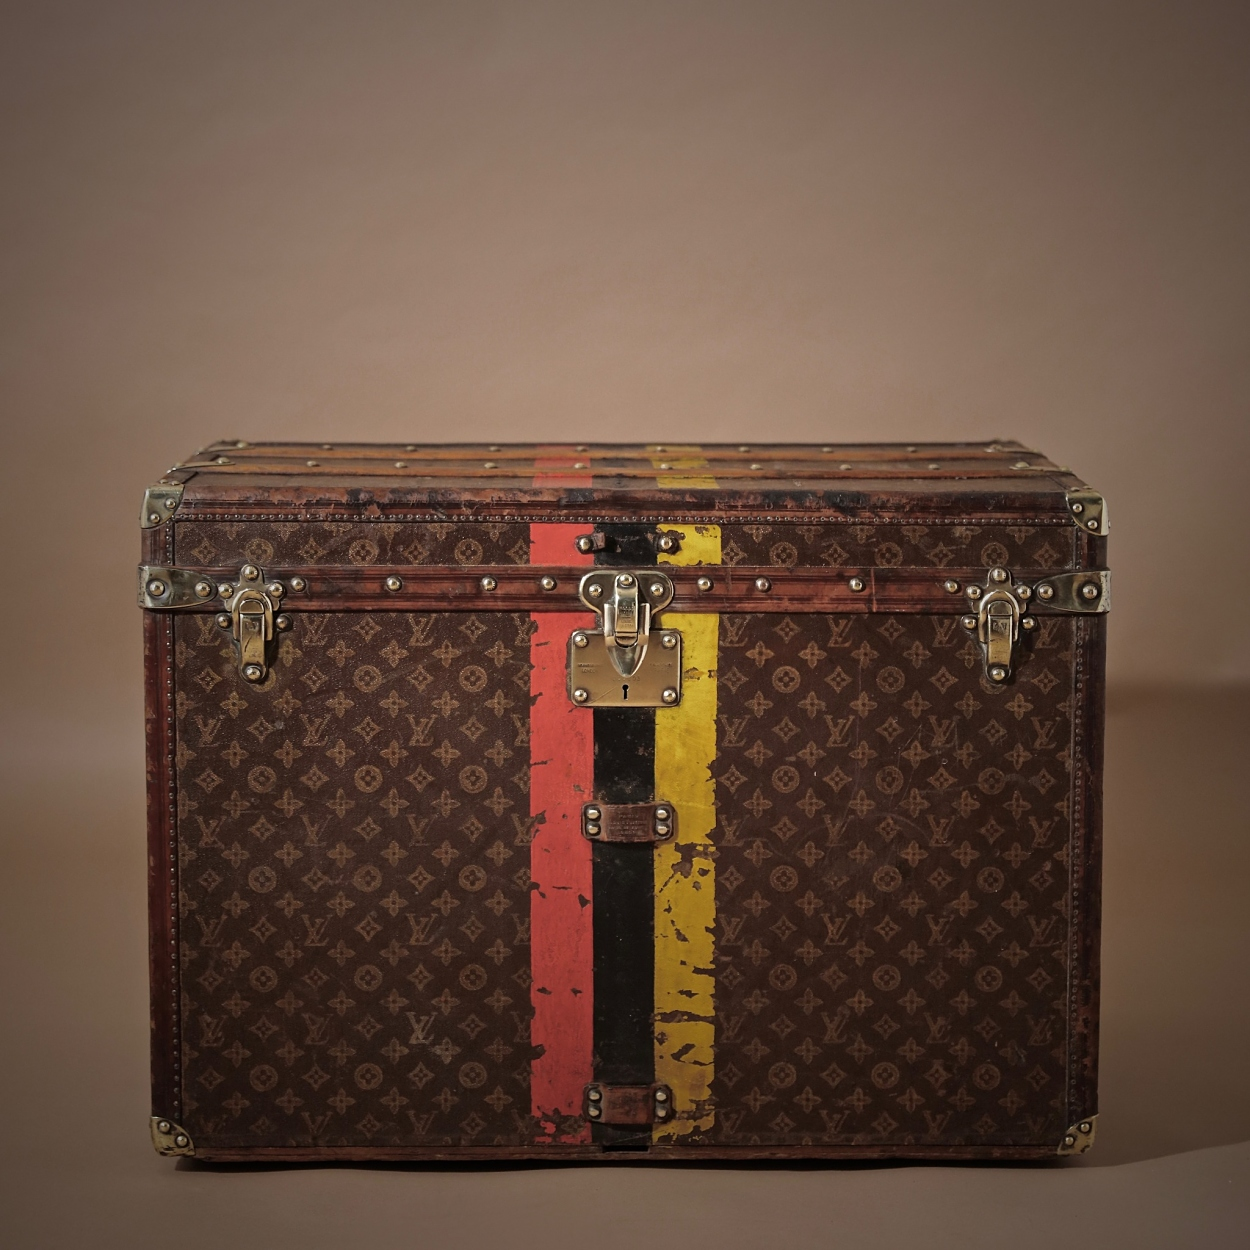 the-well-traveled-trunk-louis-vuitton-thumbnail-product-5722